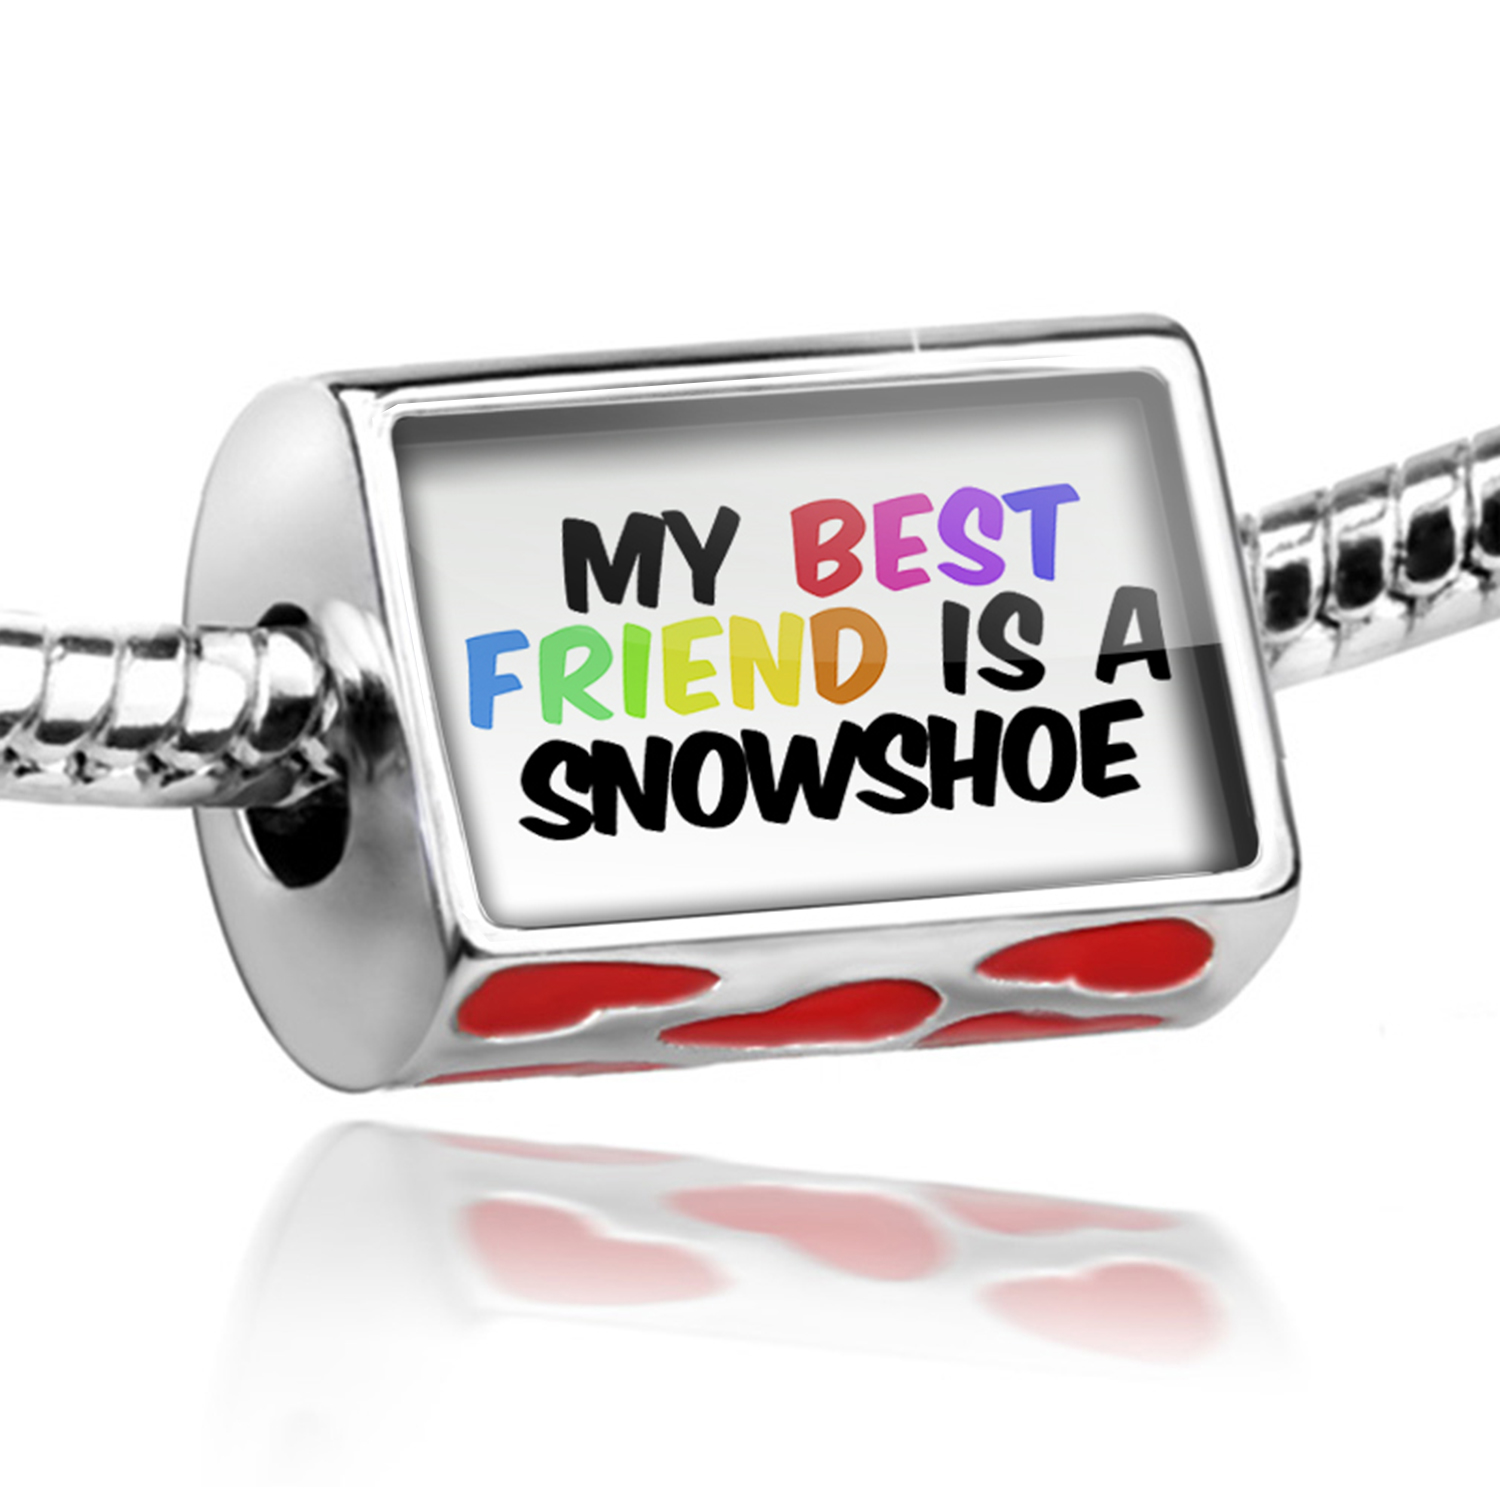 Bead My best Friend a Snowshoe Cat from United States Charm Fits All European Bracelets by NEONBLOND